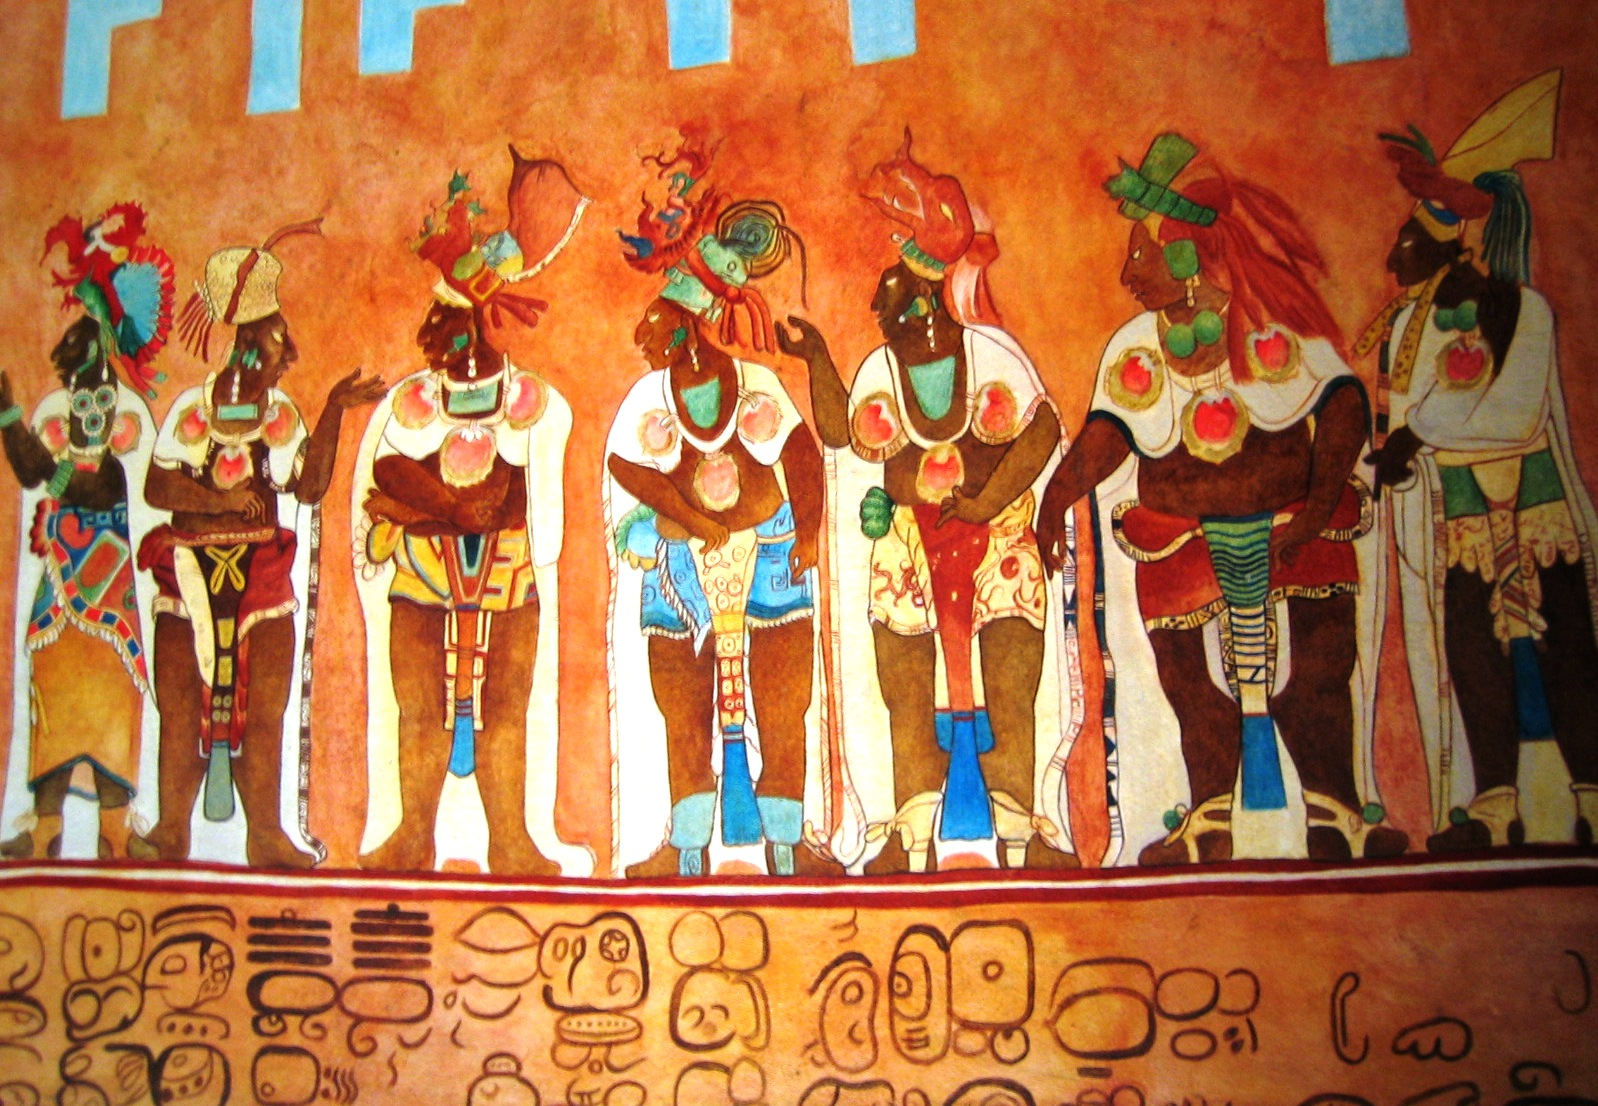 Example reproduction of a section of the Bonampak Murals as commissioned by Professor Mary Miller and completed by artists Heather Hurst and Leonard Ashby of the Bonampak Documentation Project. The infrared images captured by this project revealed portions of the murals that were not visible to the naked eye due to erosion or otherwise destroyed by previously botched restoration attempts. In this way, Hurst and Ashby were able to create very detailed reproductions.